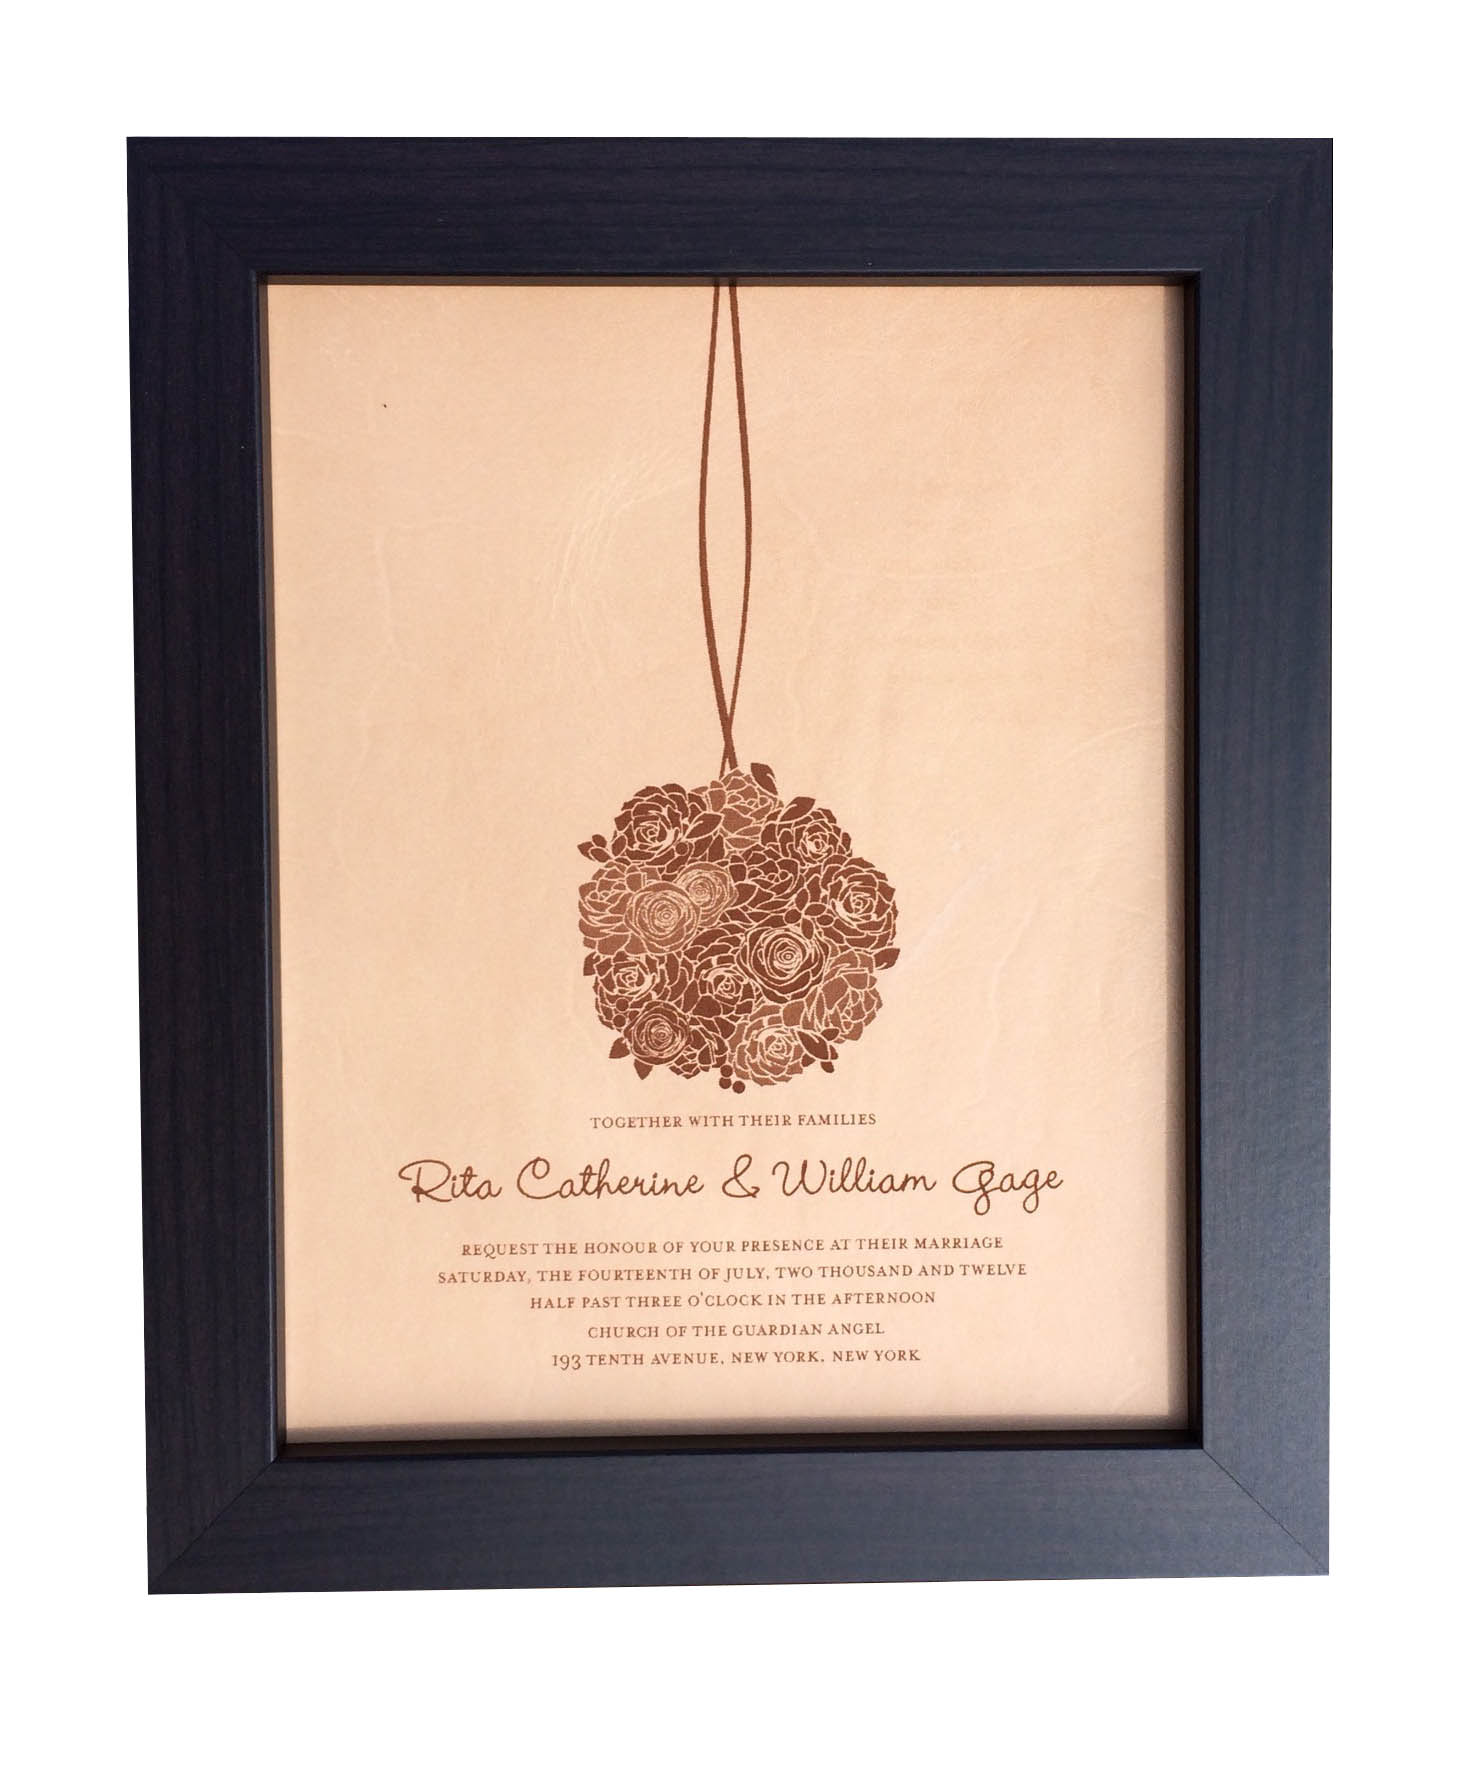 Wedding Gifts For Invitees: Leather Photo Engraved Wedding Invitation